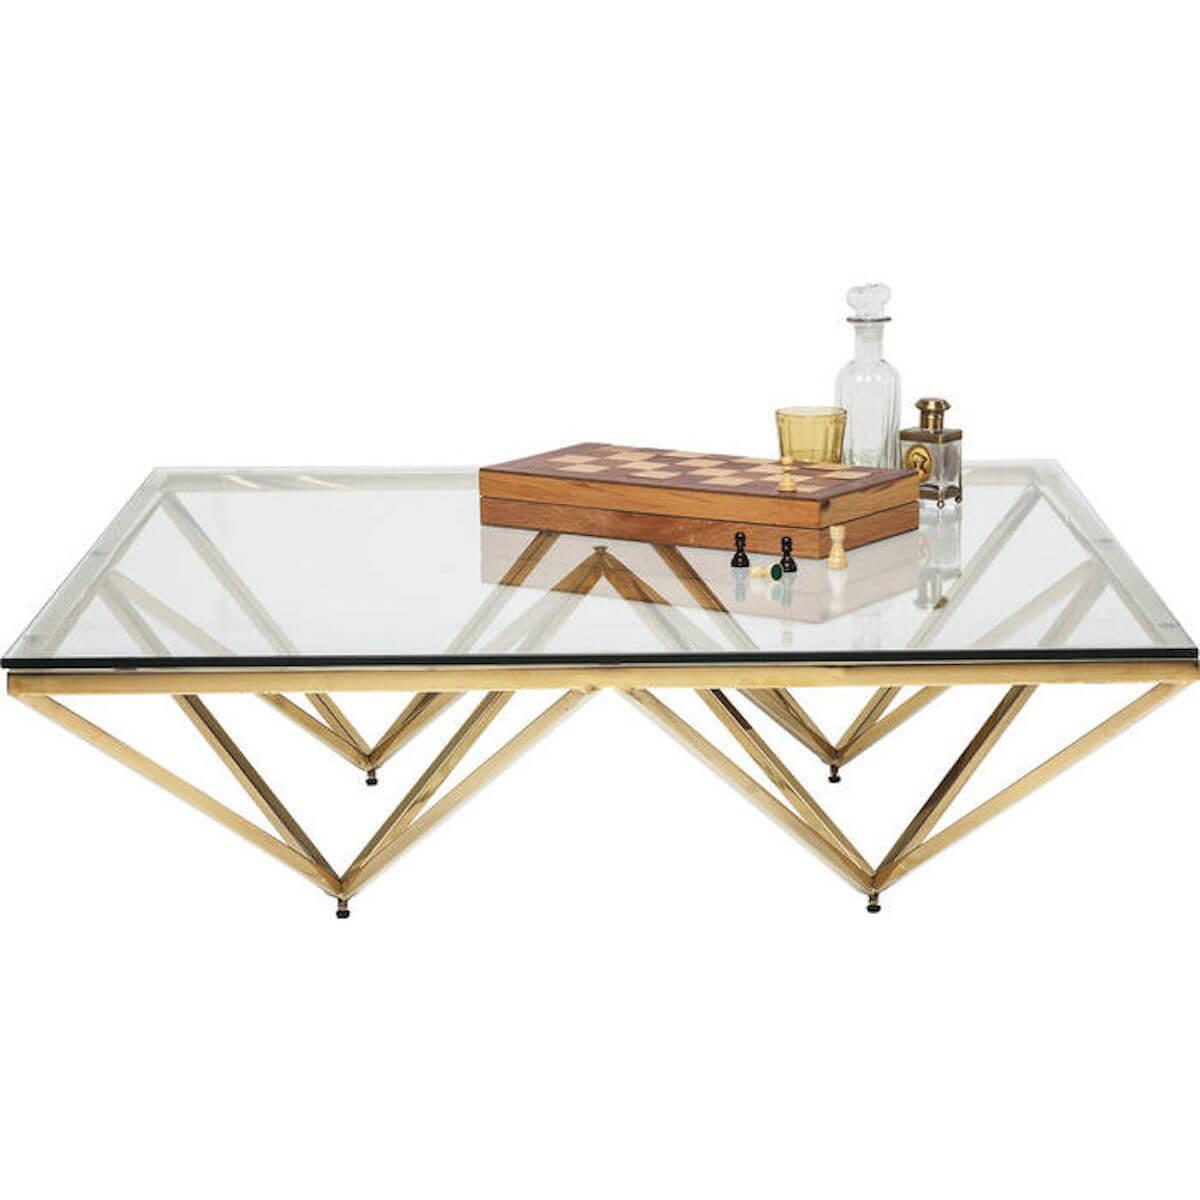 Abitare Living Lu Table Basse 105x105cm Network Kare Design Doree